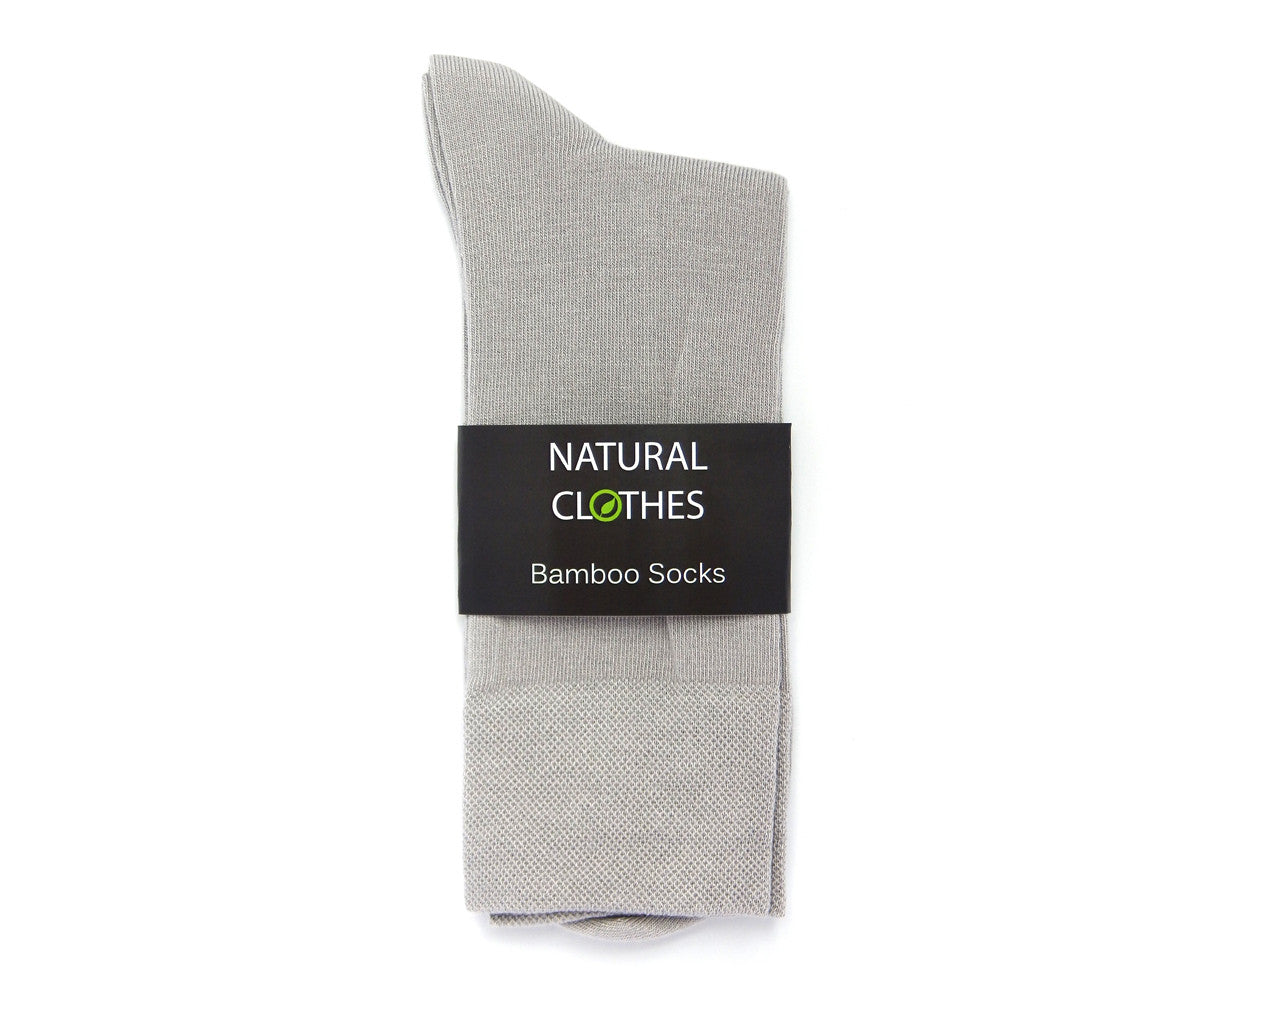 Bamboo Mid Cut Socks Ashen - Natural Clothes Bamboo Clothing & Accessories for Men & Women